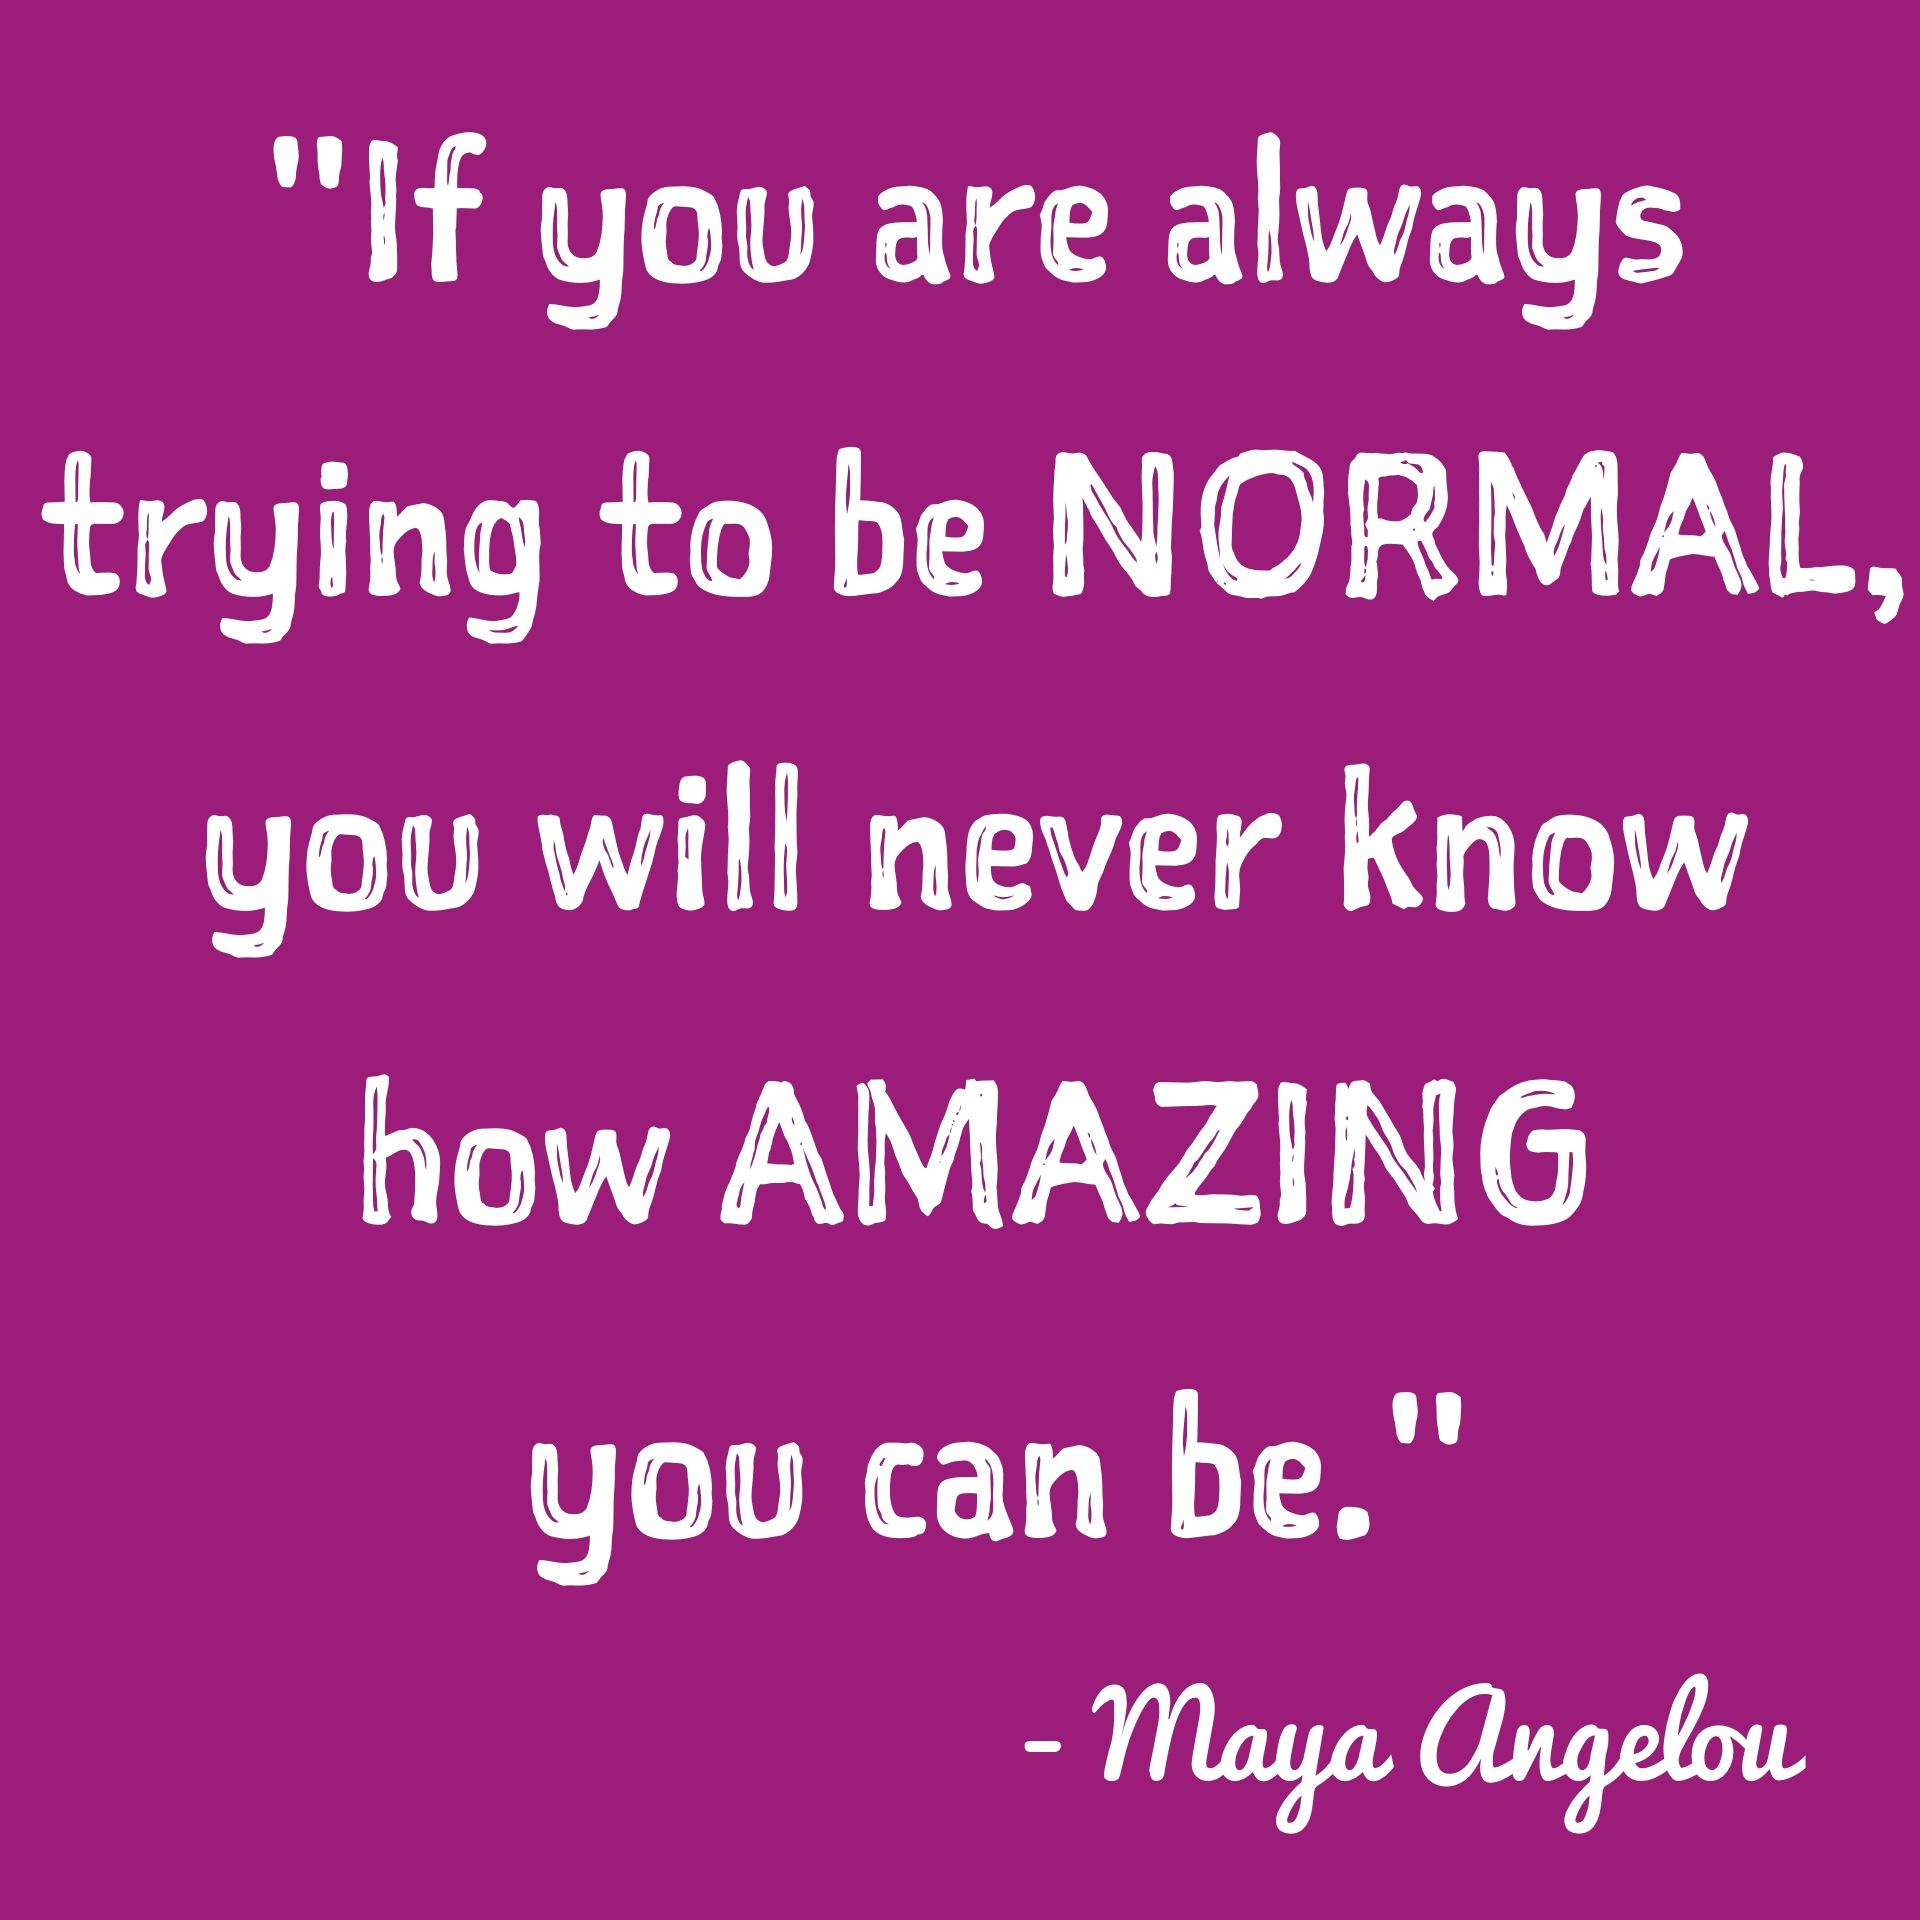 inspirational-quotes-inspiring-quotes-potential-quotes-inner-voice-quotes-if-you-are-always-trying-to-be-normal-you-will-never-know-how-am.jpg